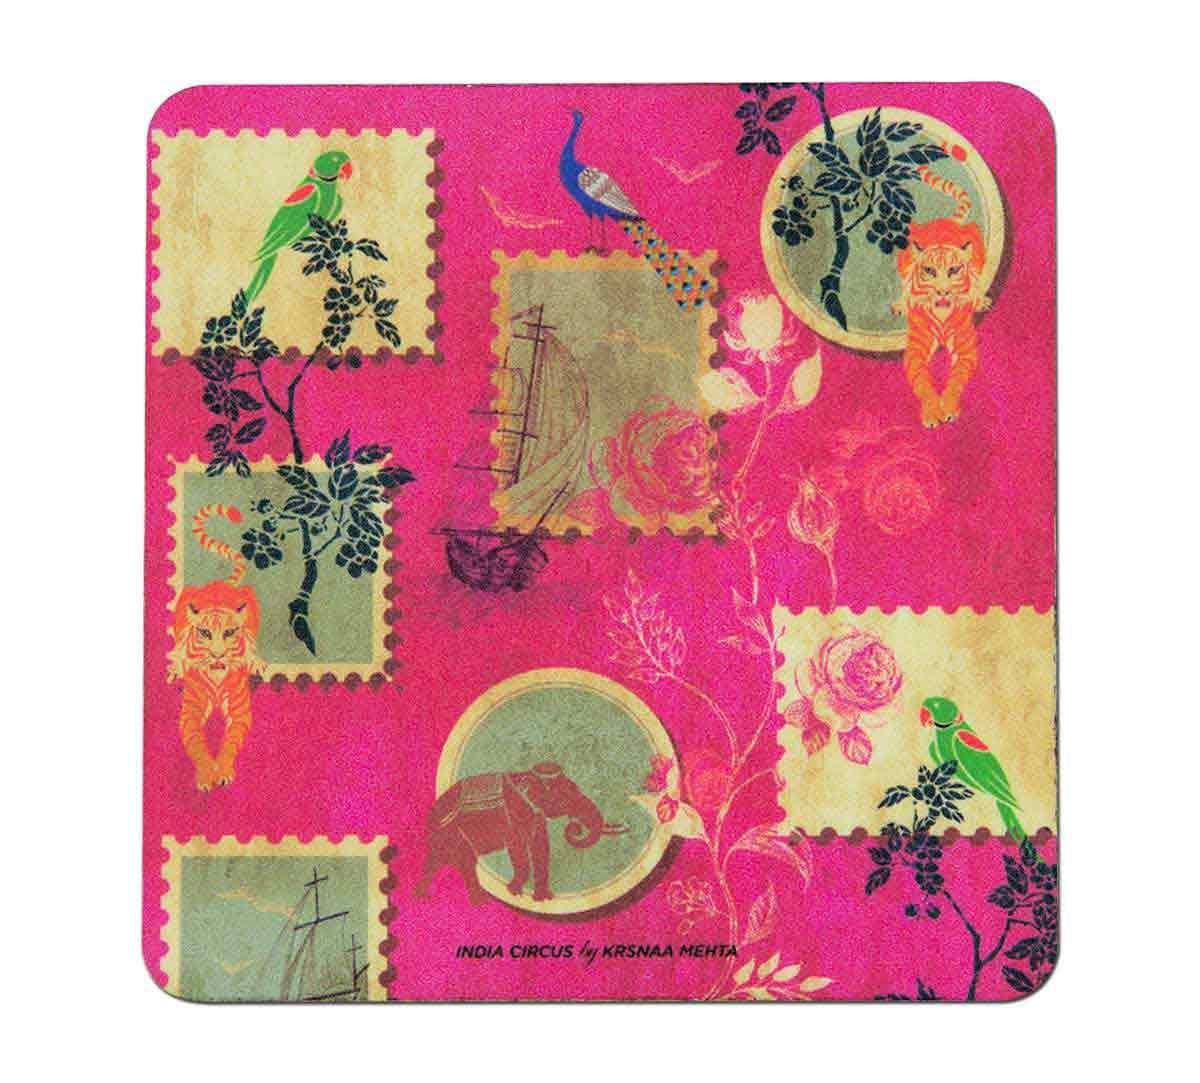 India Circus Wildlife Stamps Table Coaster Set of 6